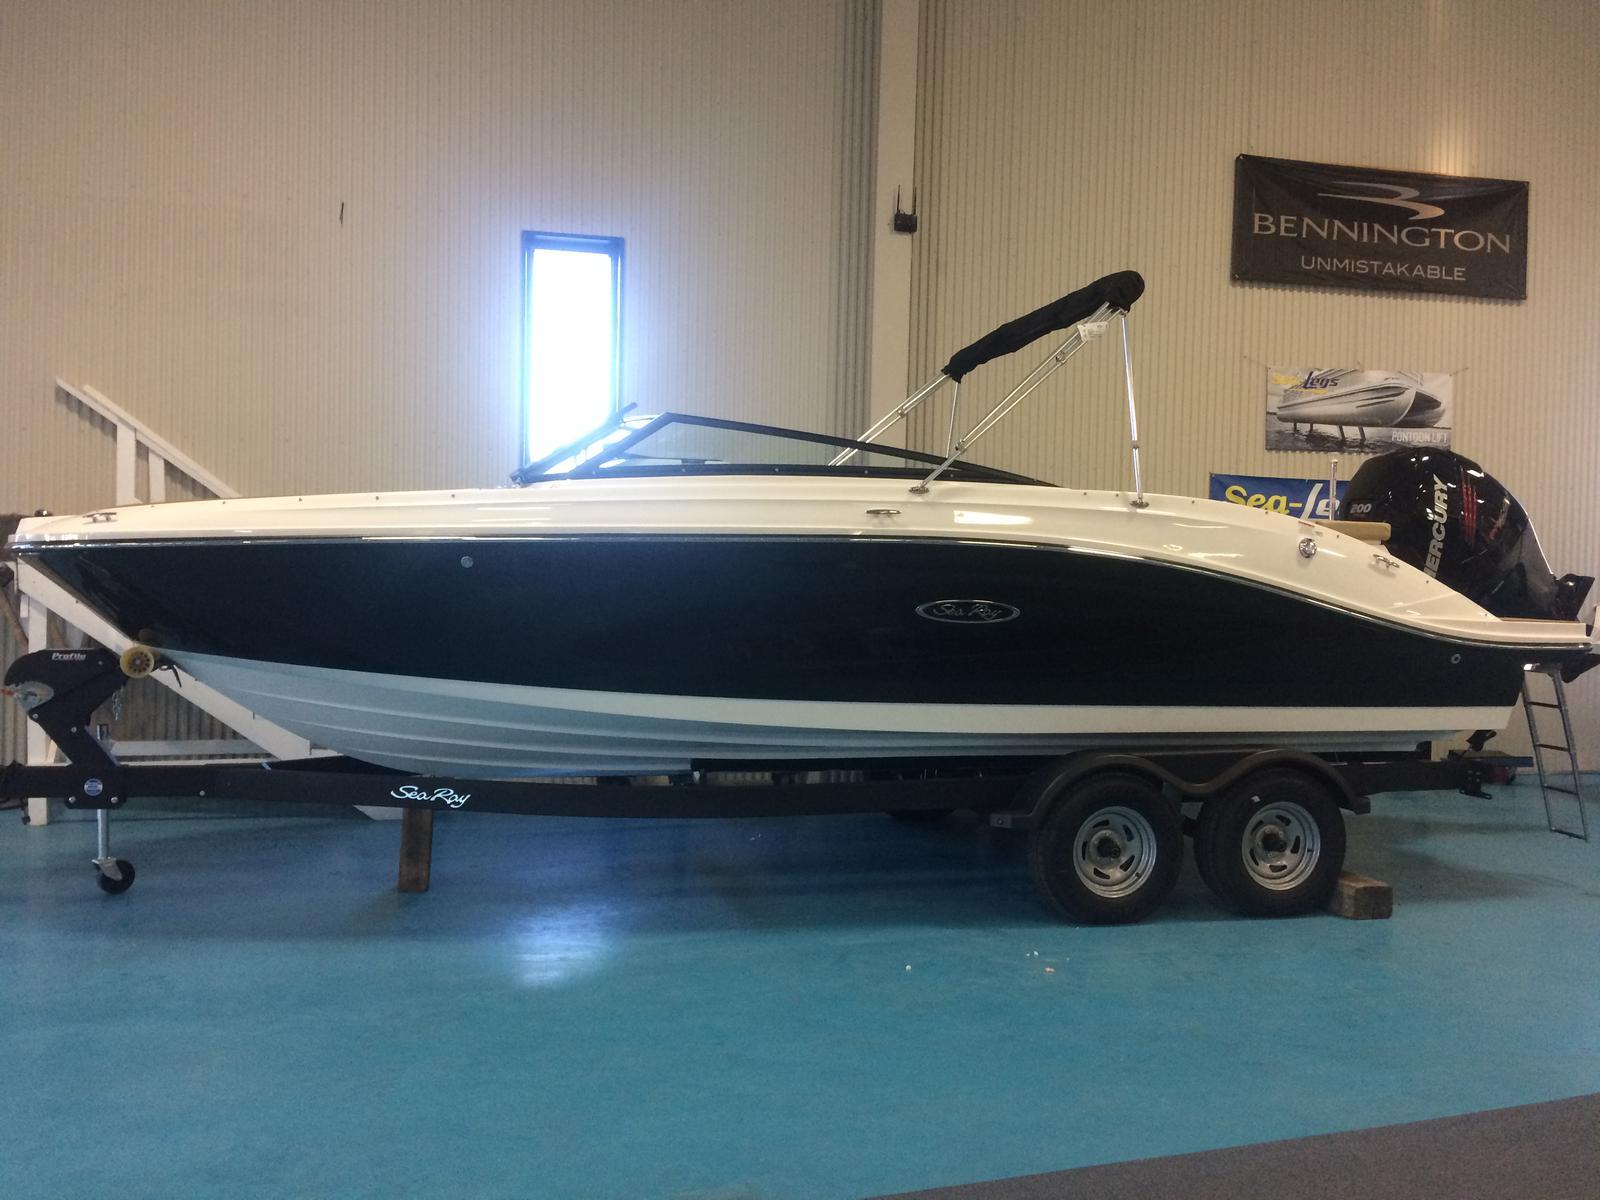 NEW 2018 Sea Ray 230 SPO - Hutchinson's Boat Works